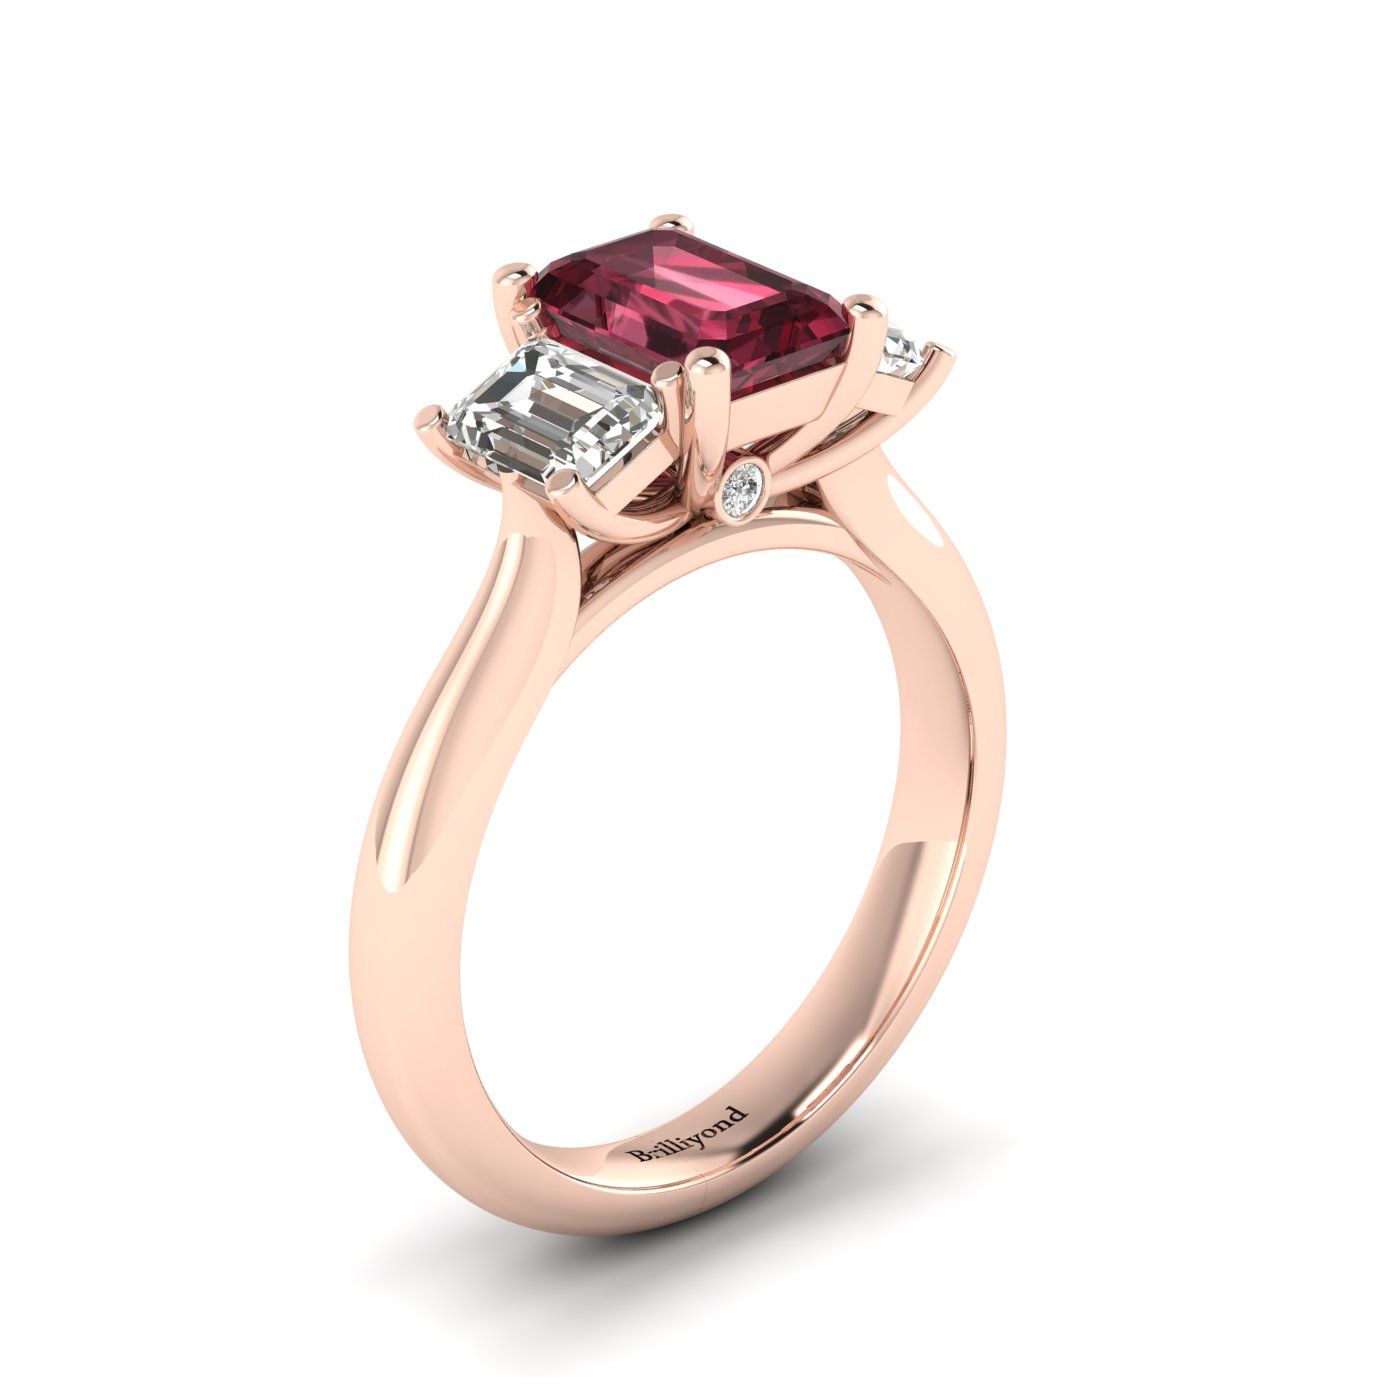 rhodolite si vintage ring engagement cut diamond garnet in victorian sphere halo white gold setting h round rings i